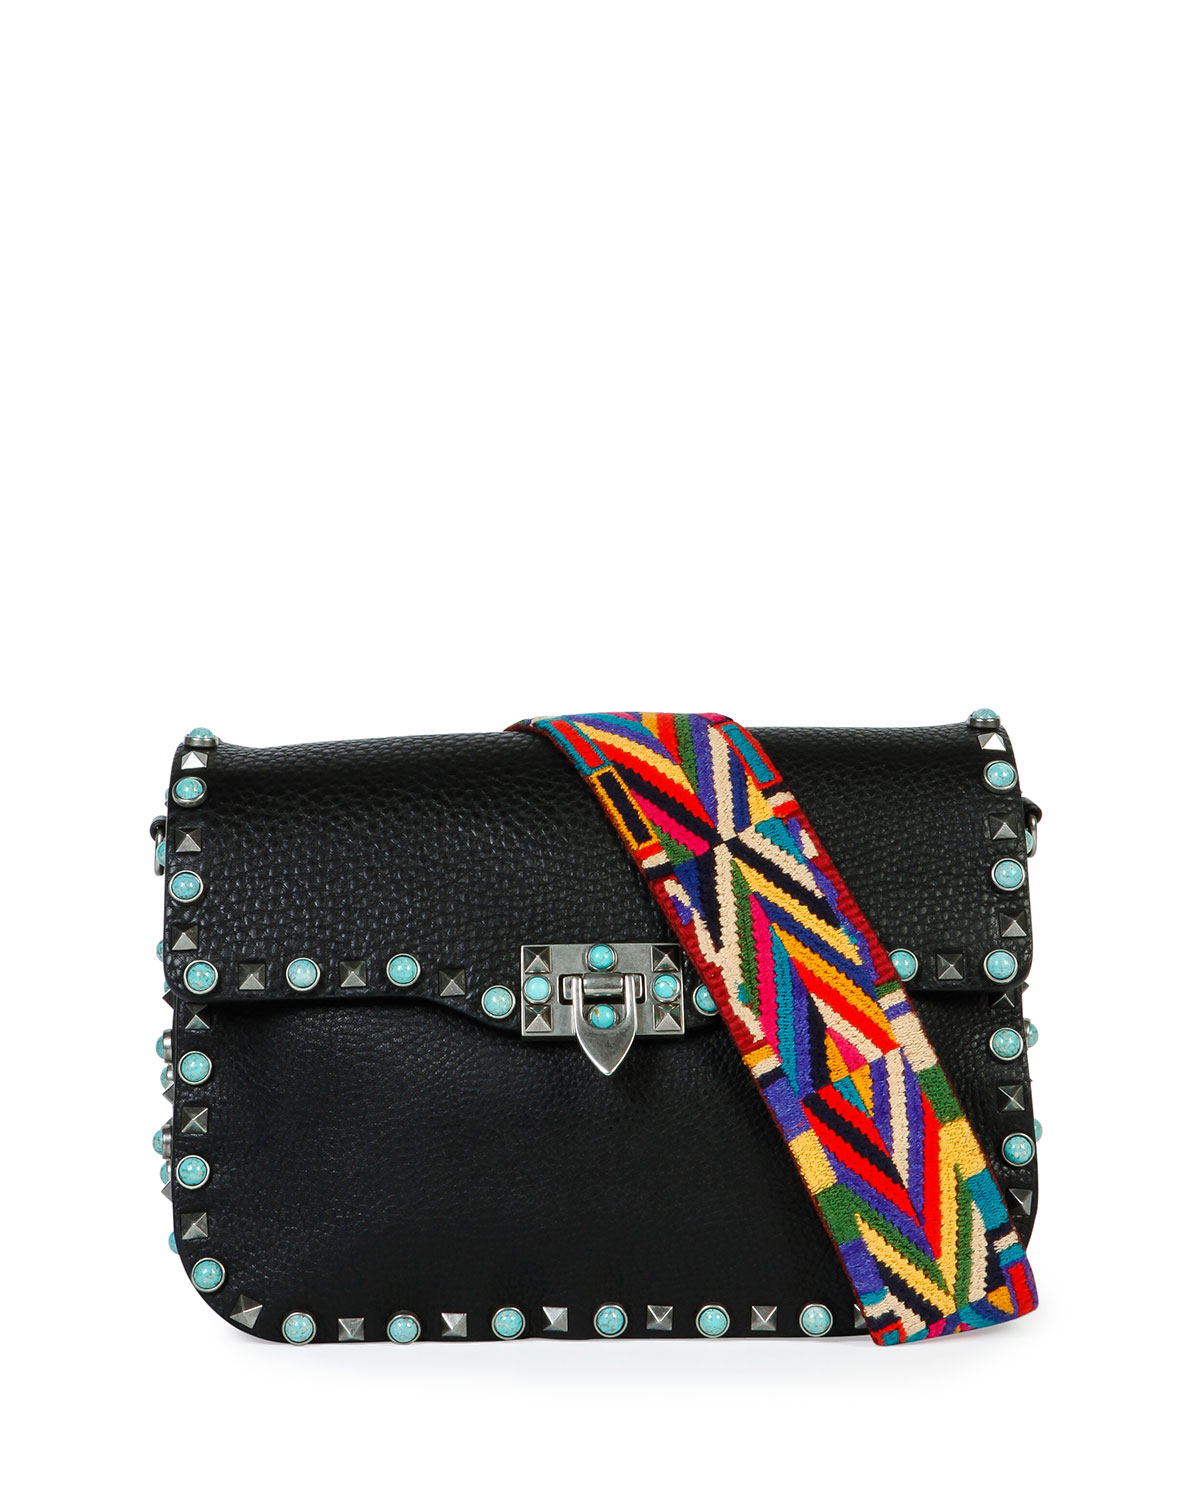 Rockstud Turquoise-Stud Saddle Bag w/Embroidered Strap, Black - Valentino